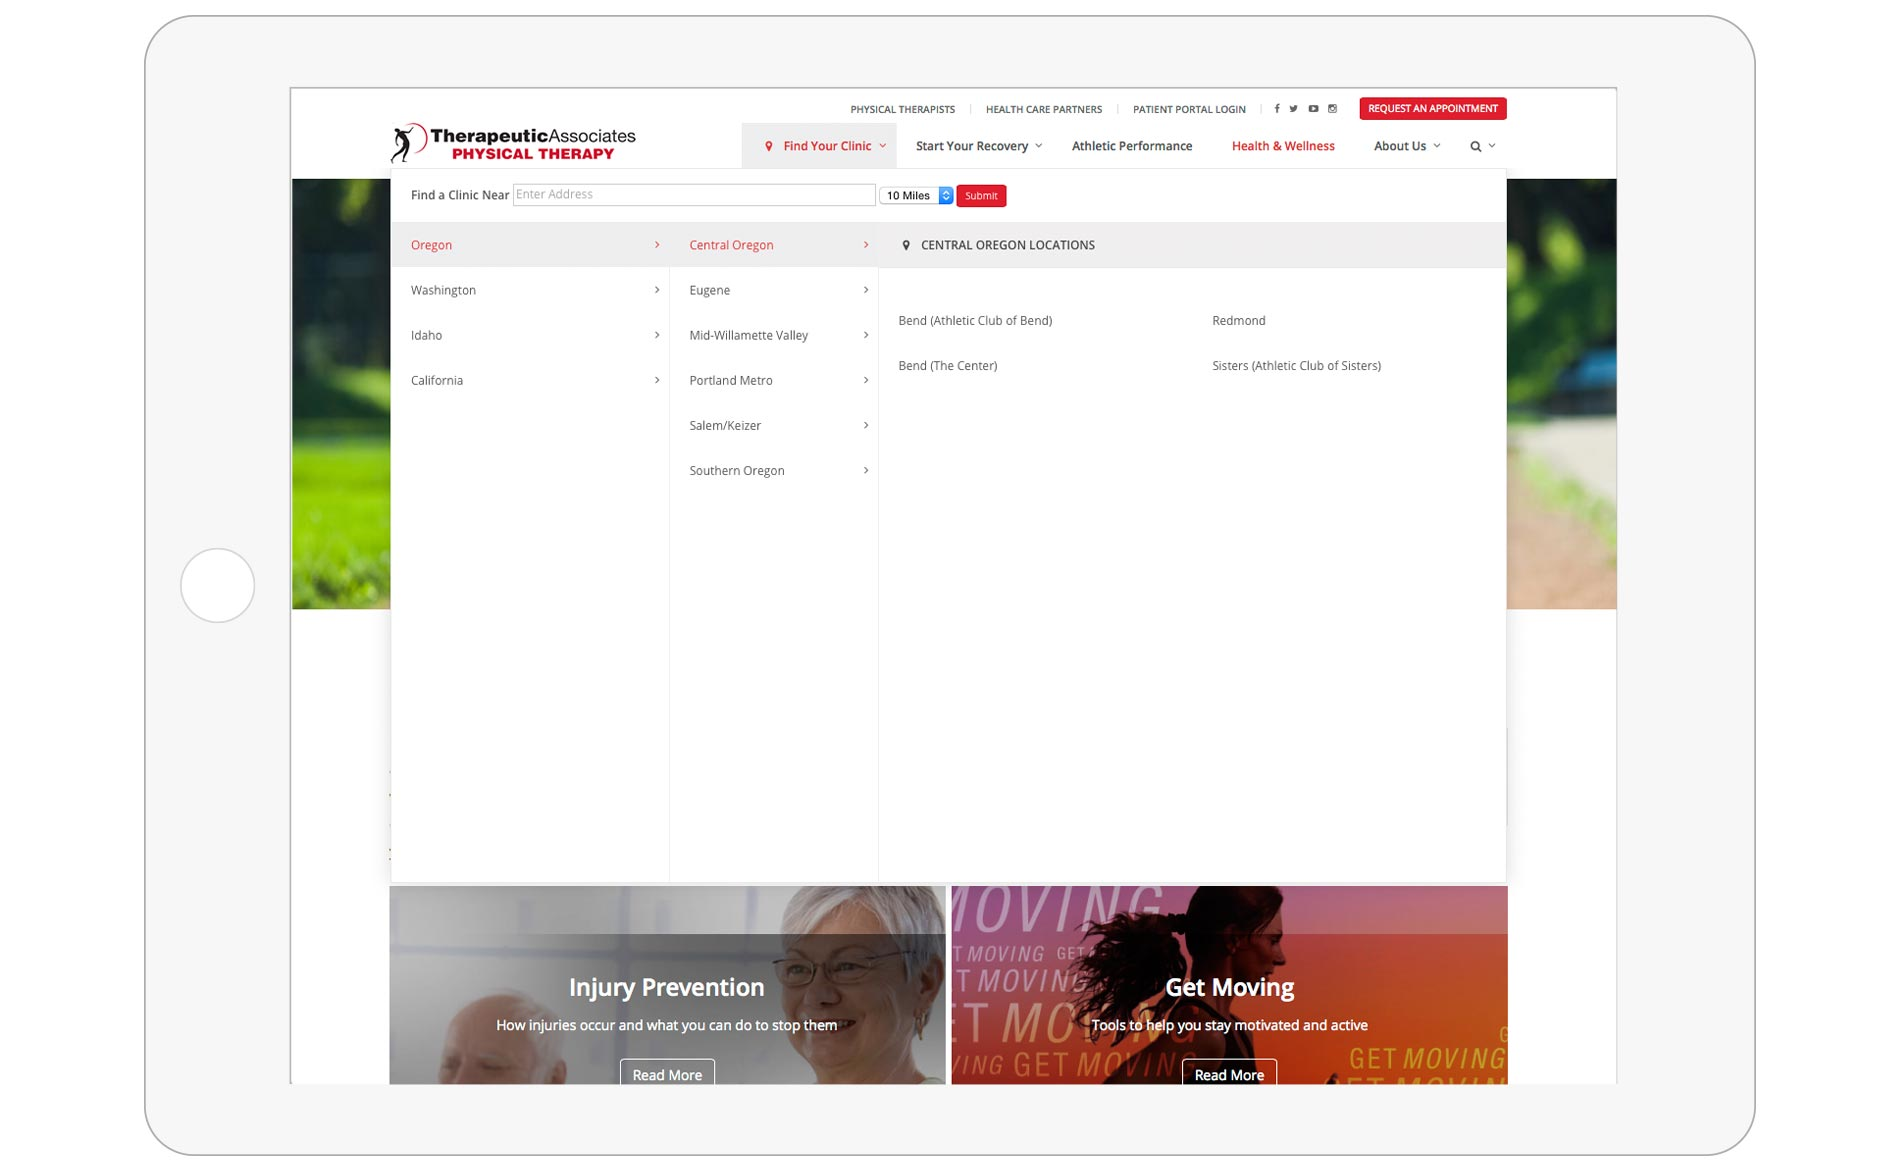 Therapeutic Associates Website Redesign - Navigation